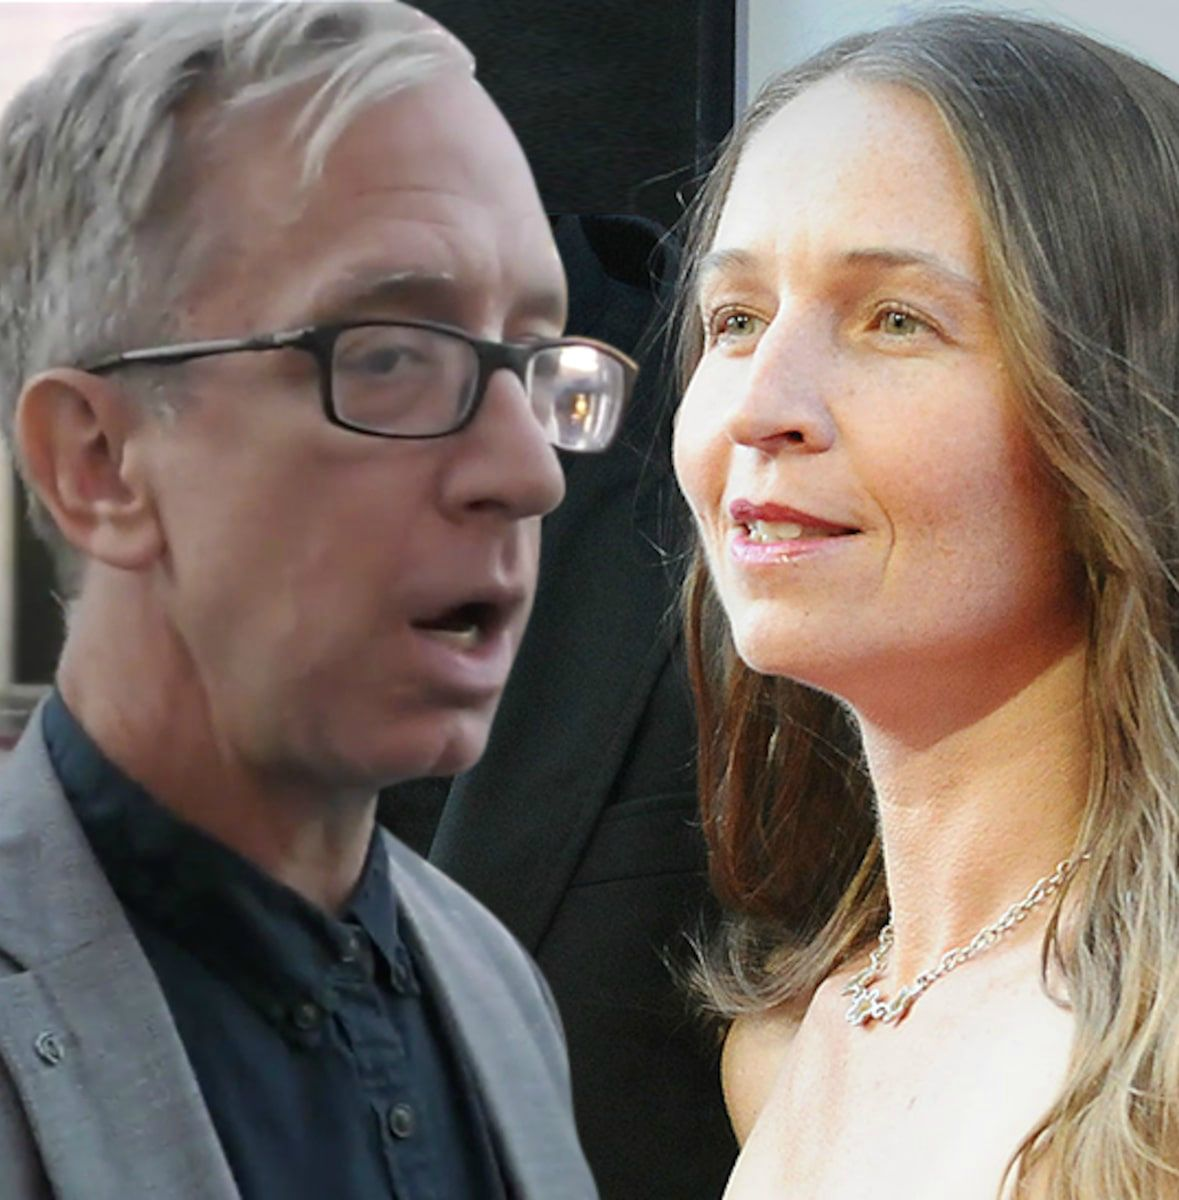 Lena Sved and her husband Andy picture attached together